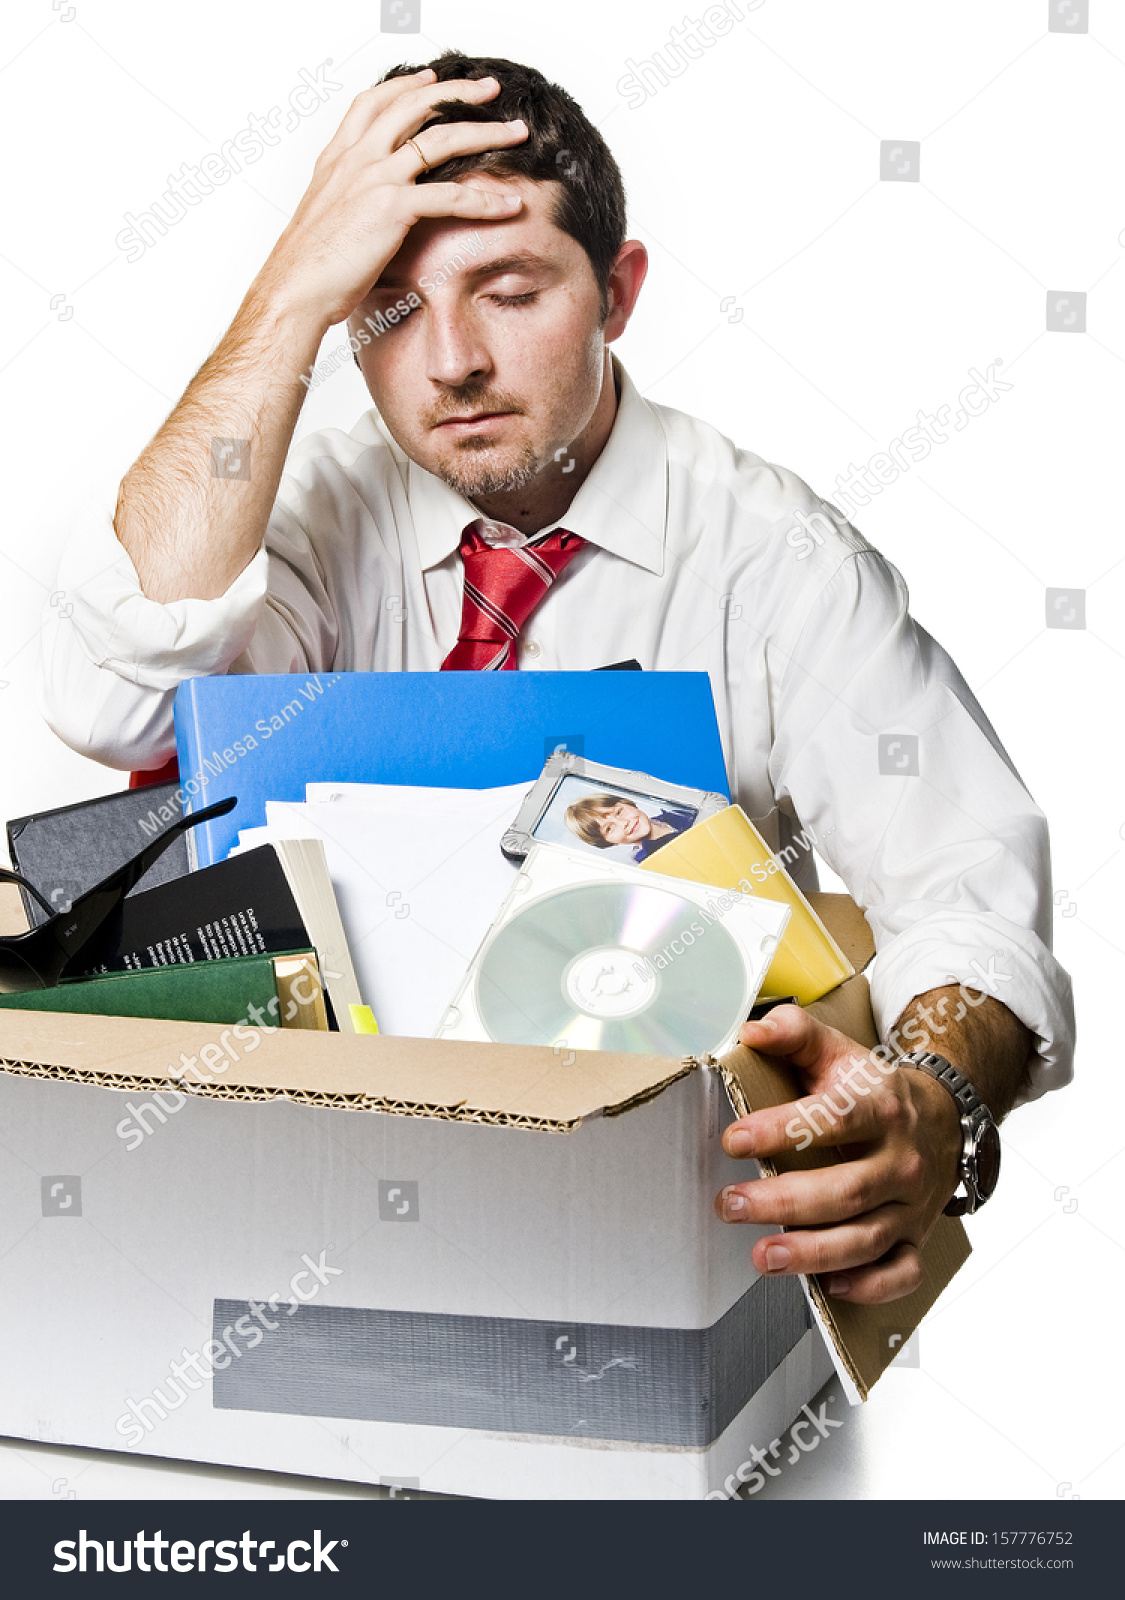 desperate man cardboard box fired job stock photo  desperate man cardboard box fired from job